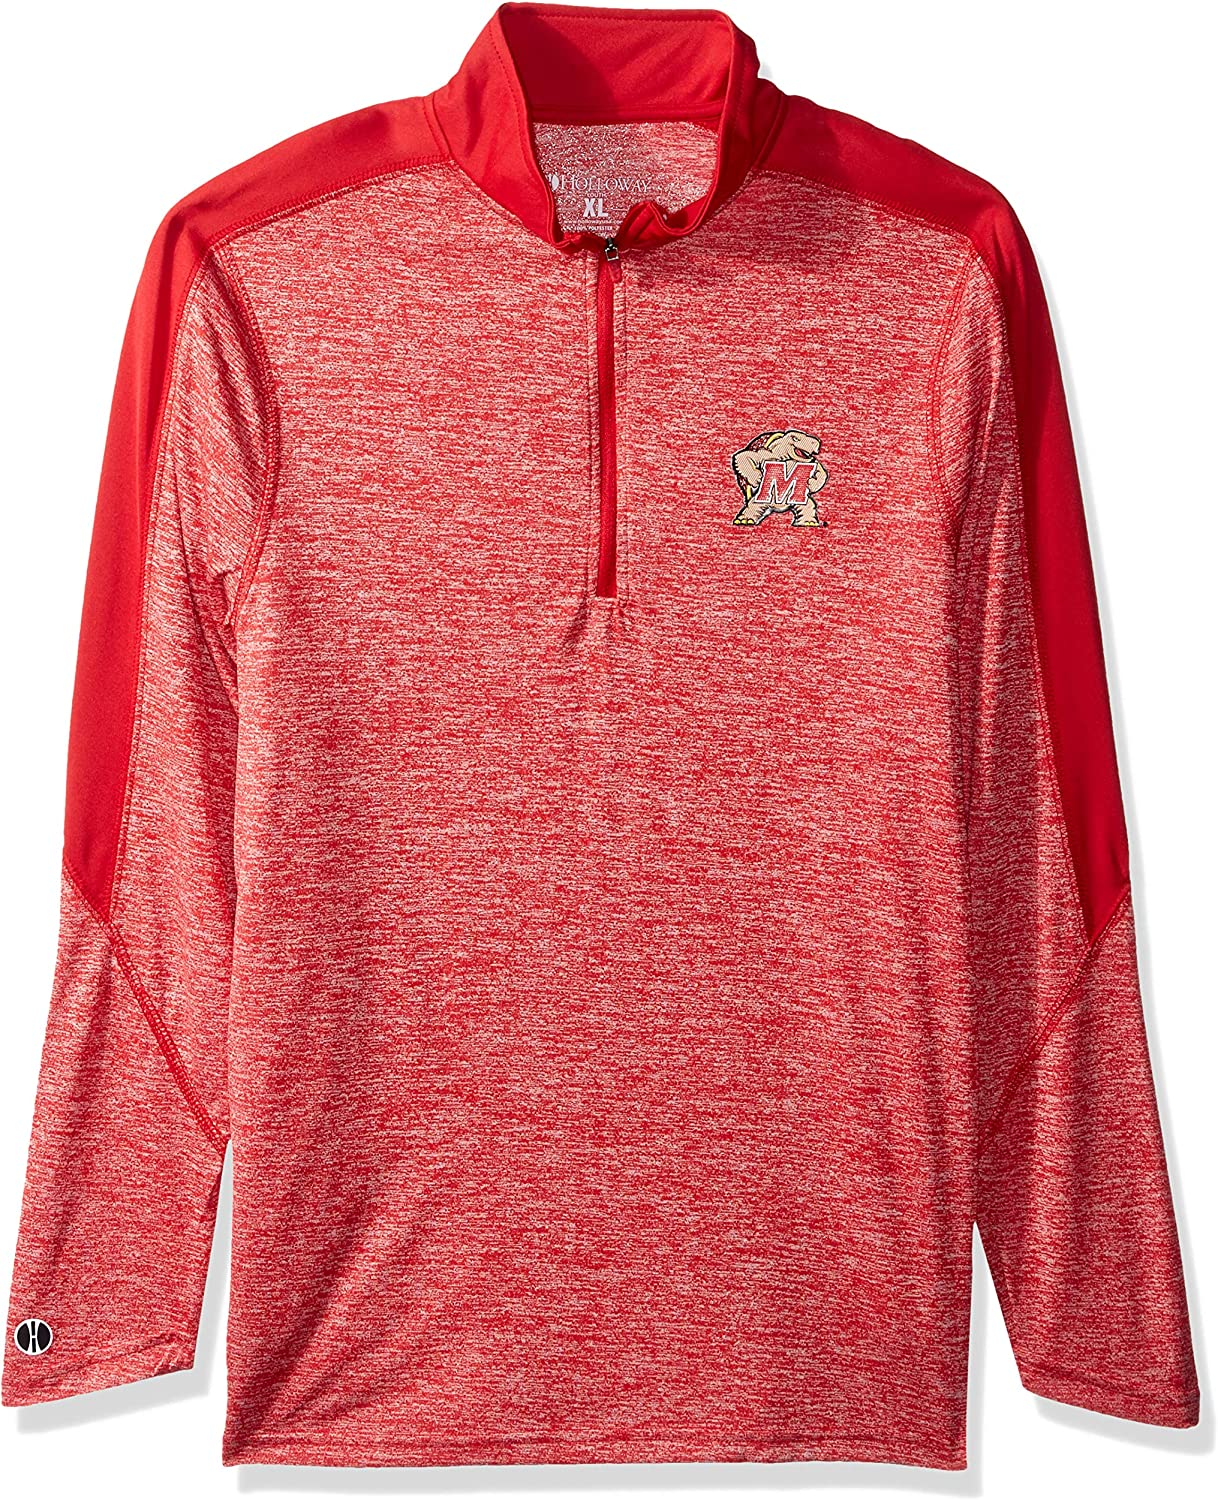 Ouray Sportswear NCAA Youth-Unisex Youth Performance S//S T